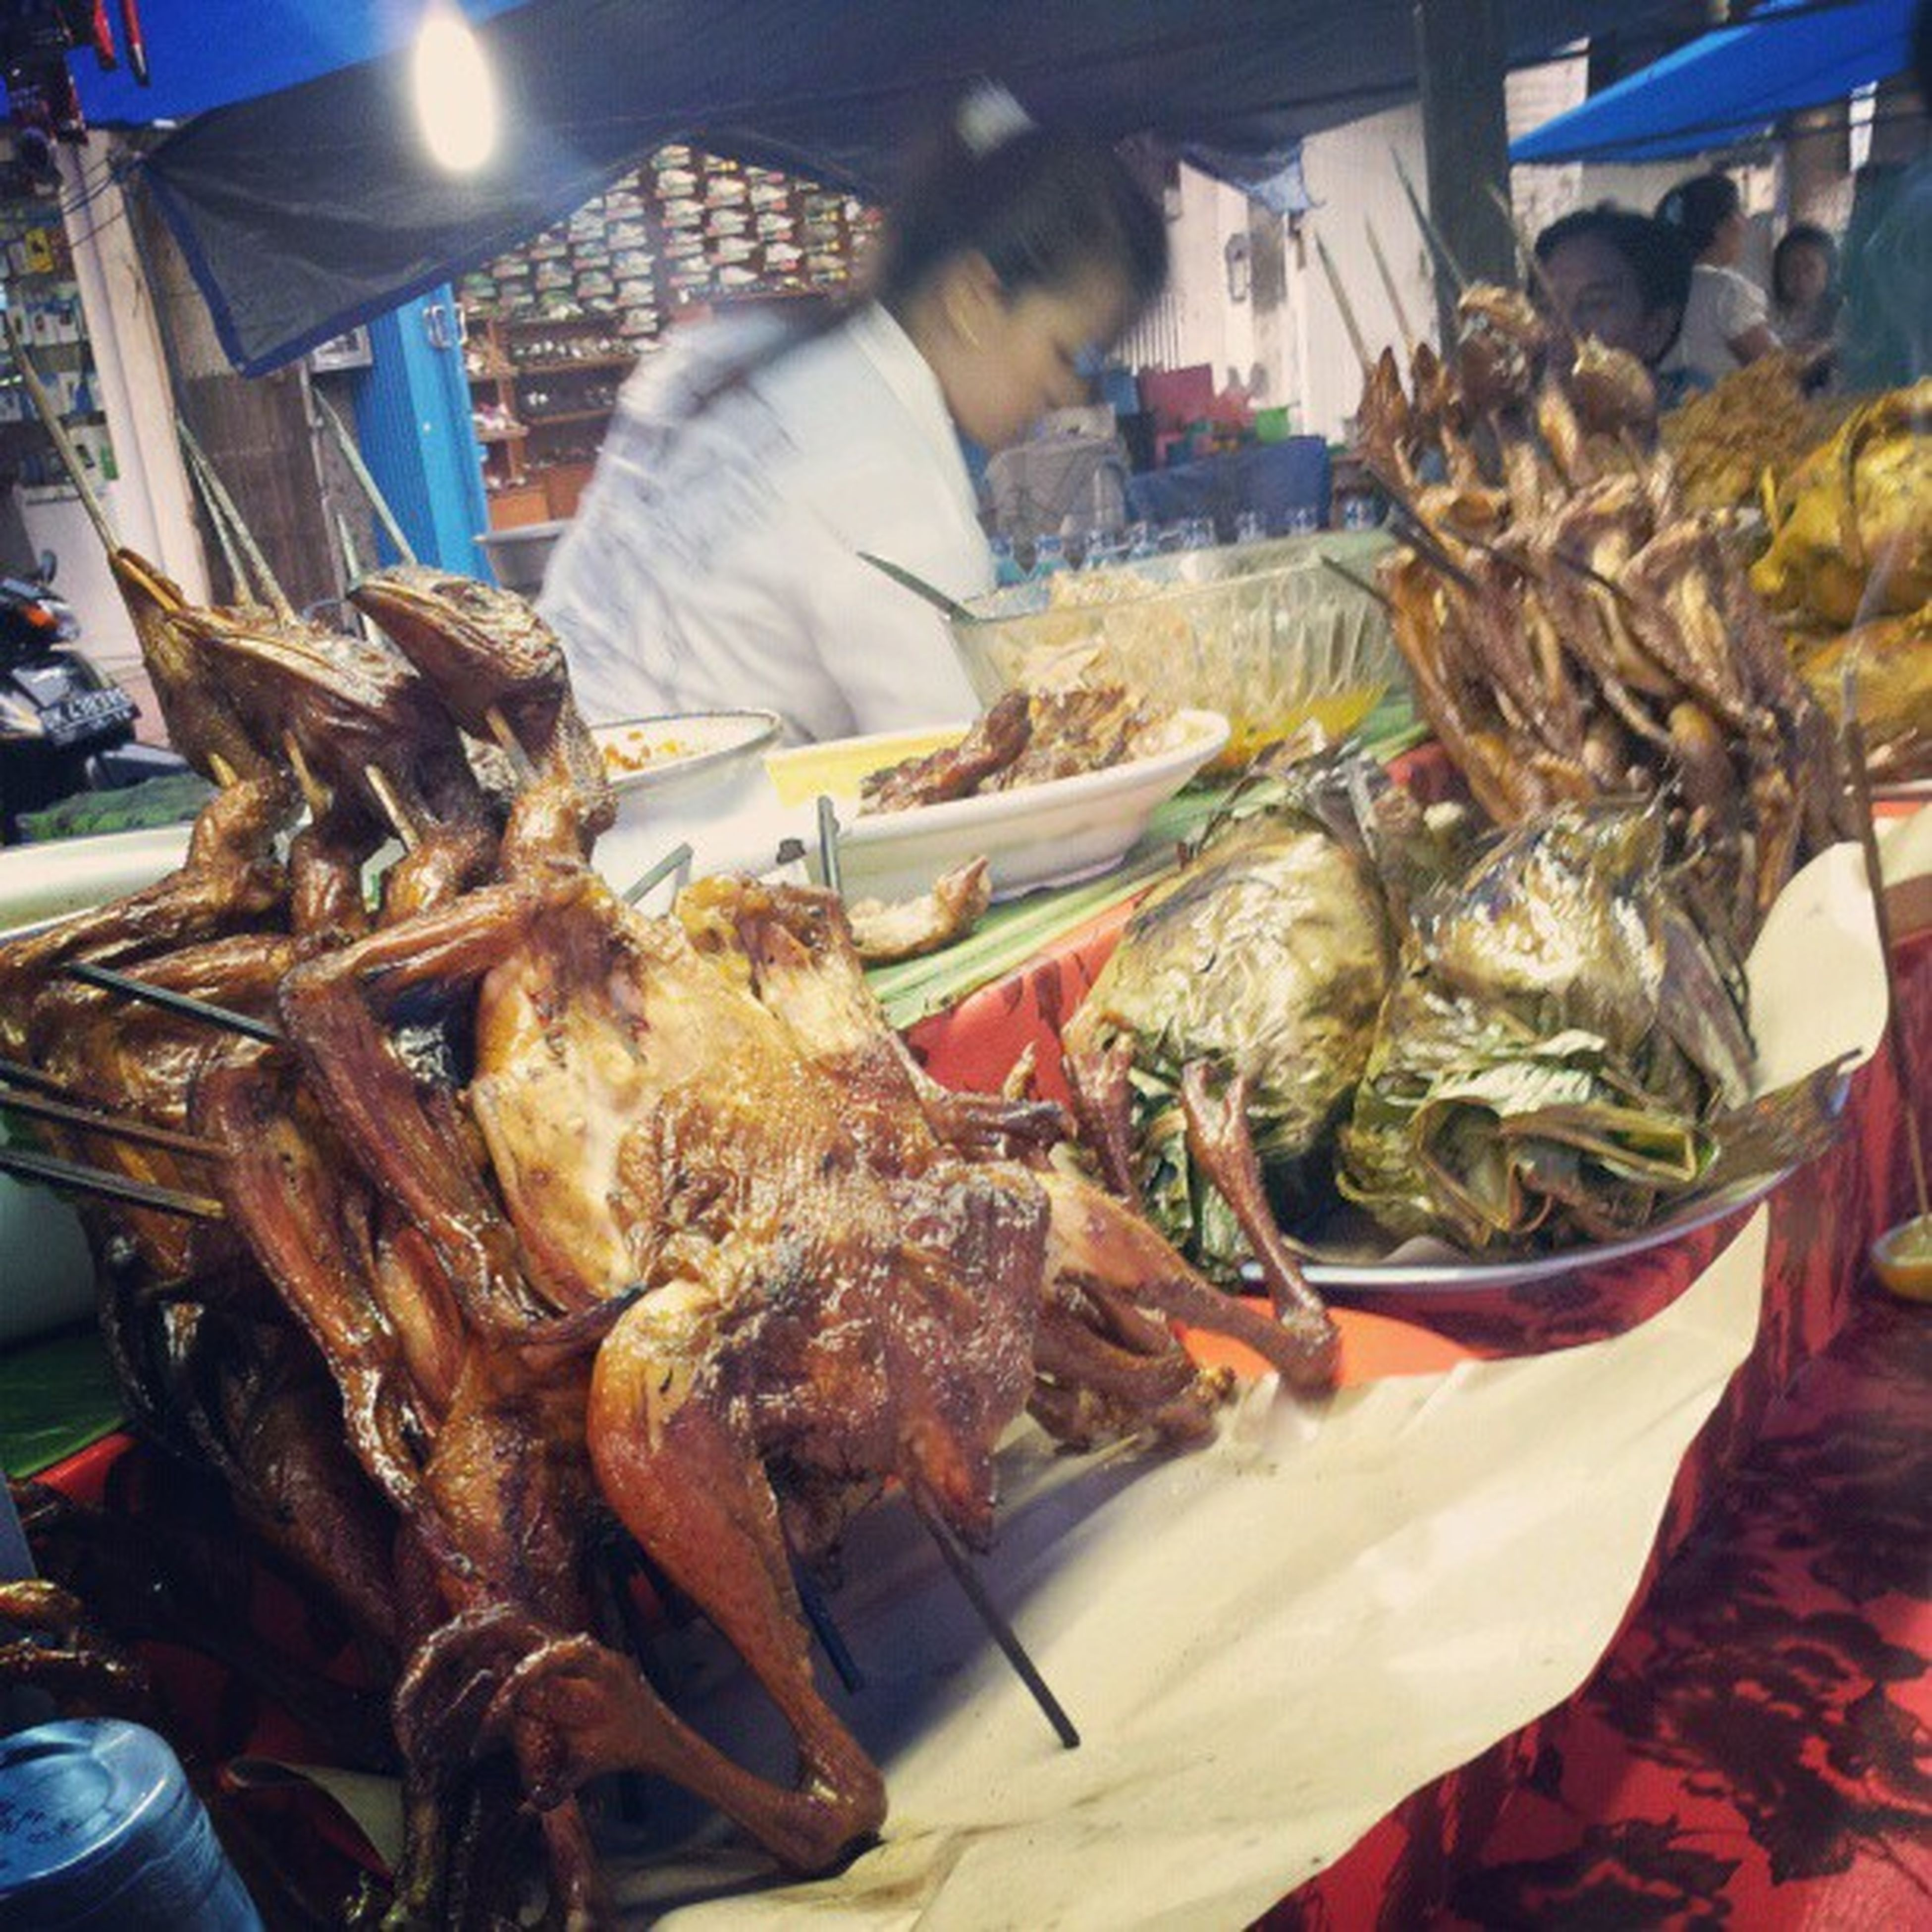 food and drink, food, seafood, meat, healthy eating, freshness, fish, indoors, men, preparation, incidental people, retail, grilled, market, market stall, preparing food, prawn, barbecue grill